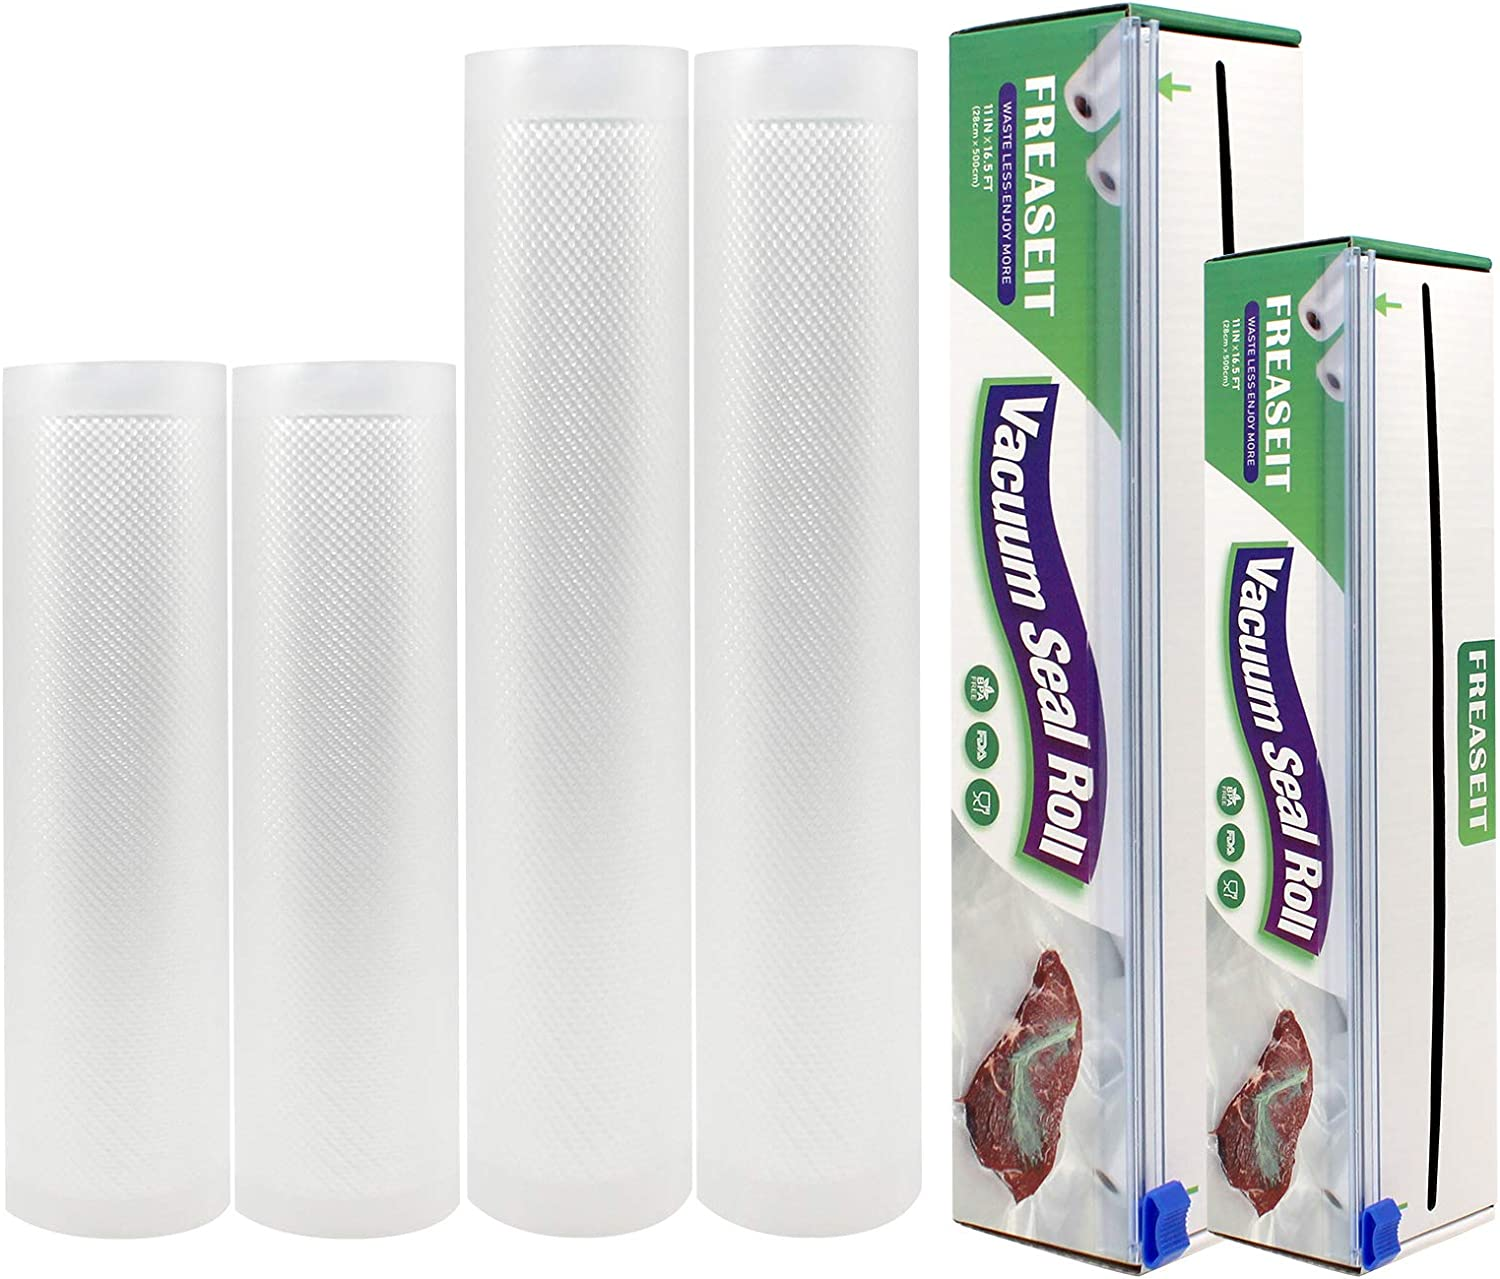 FREASEIT Vacuum Sealer Bags Rolls for Food, Commercial Grade Vacuum Sealer Bags, Heavy Duty Vacuum Sealer Rolls, Food Saver Vacuum Sealer Bags Rolls for Sous Vide